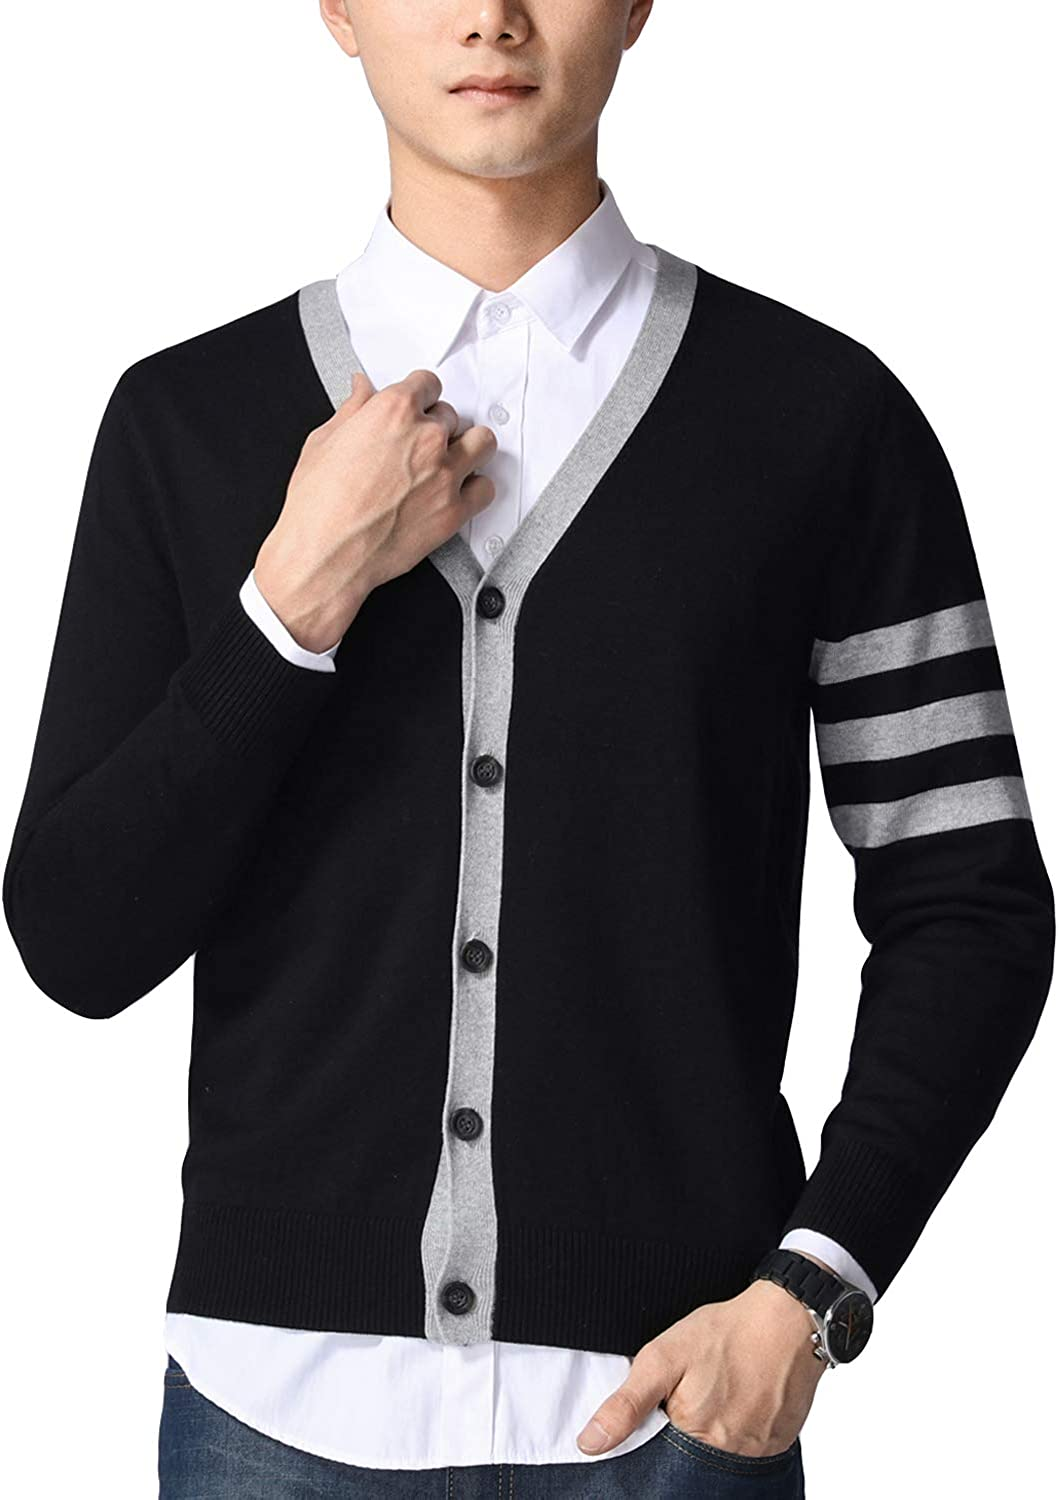 Previn Men's Casual Sweater Knit V-Neck Long Sleeve Button Down Contrast Trim Cardigans